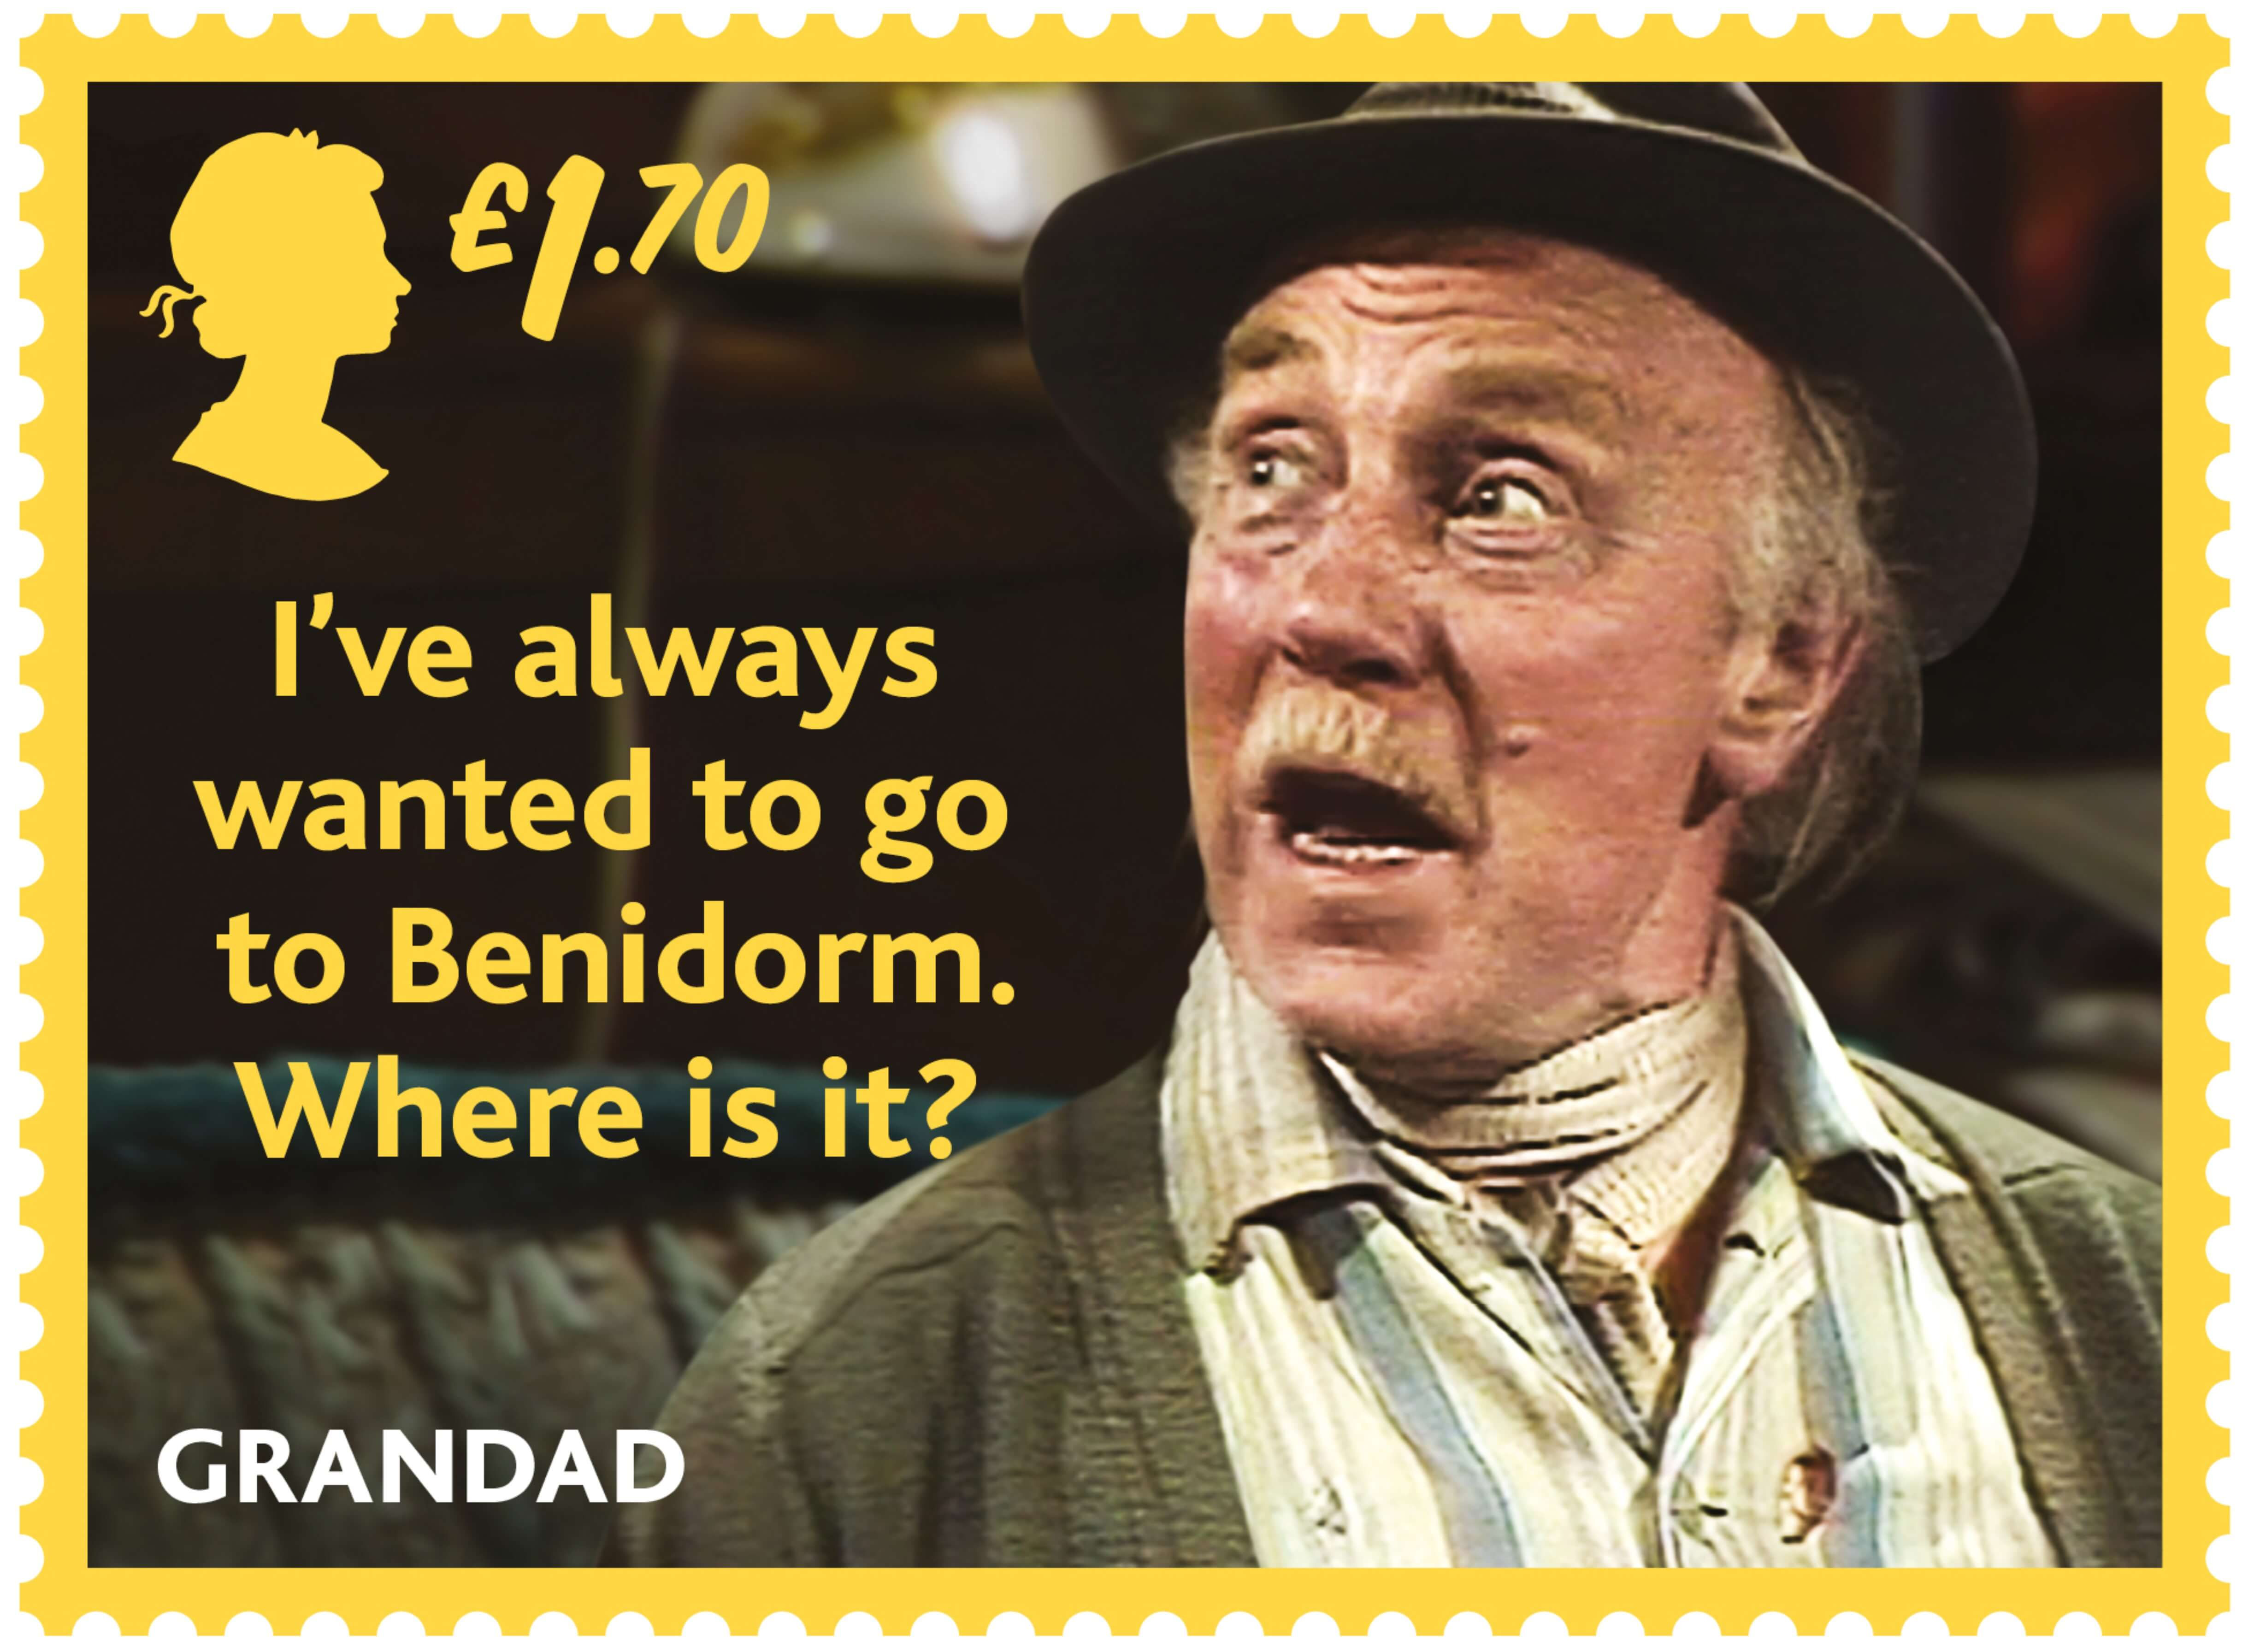 Only Fools and Horses - Grandad